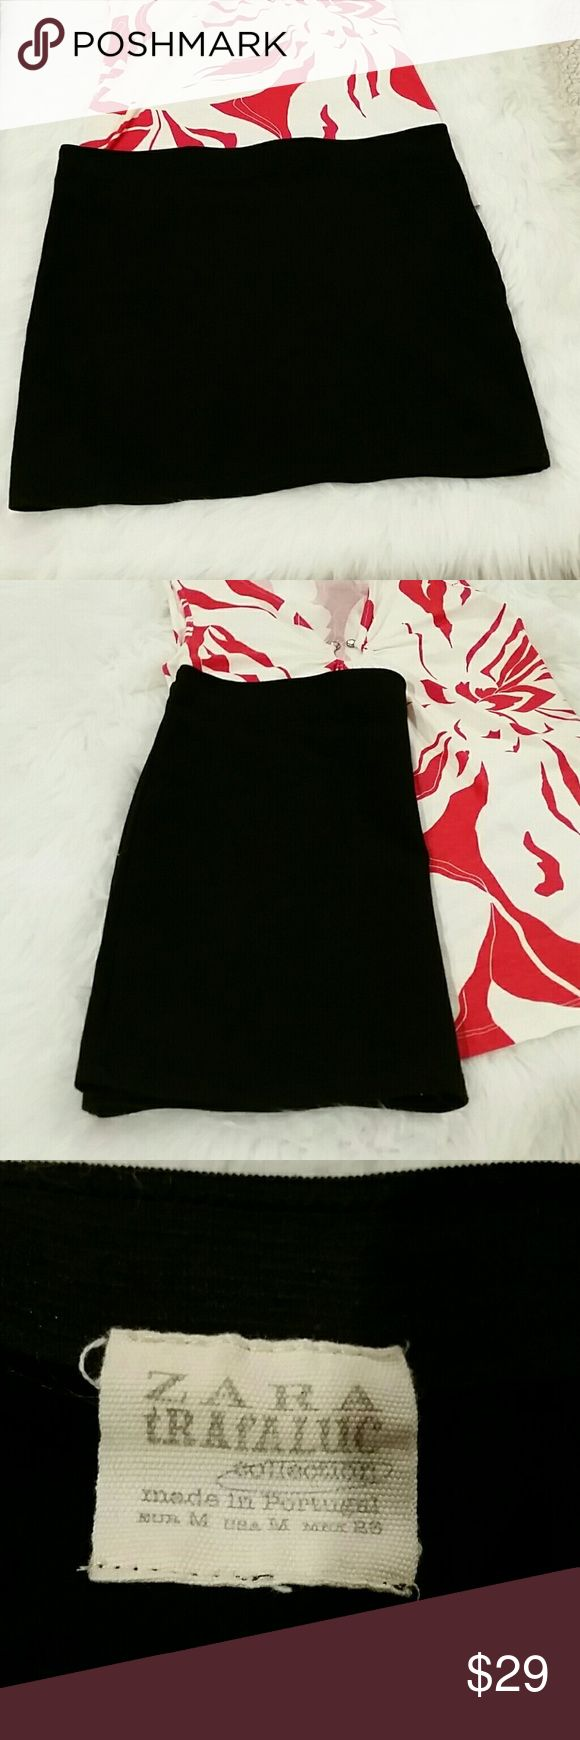 Zara trafaluc womens black tube skirt Mini Beautiful, pictures do not do this skirt justice excellent condition Size medium Zara Skirts